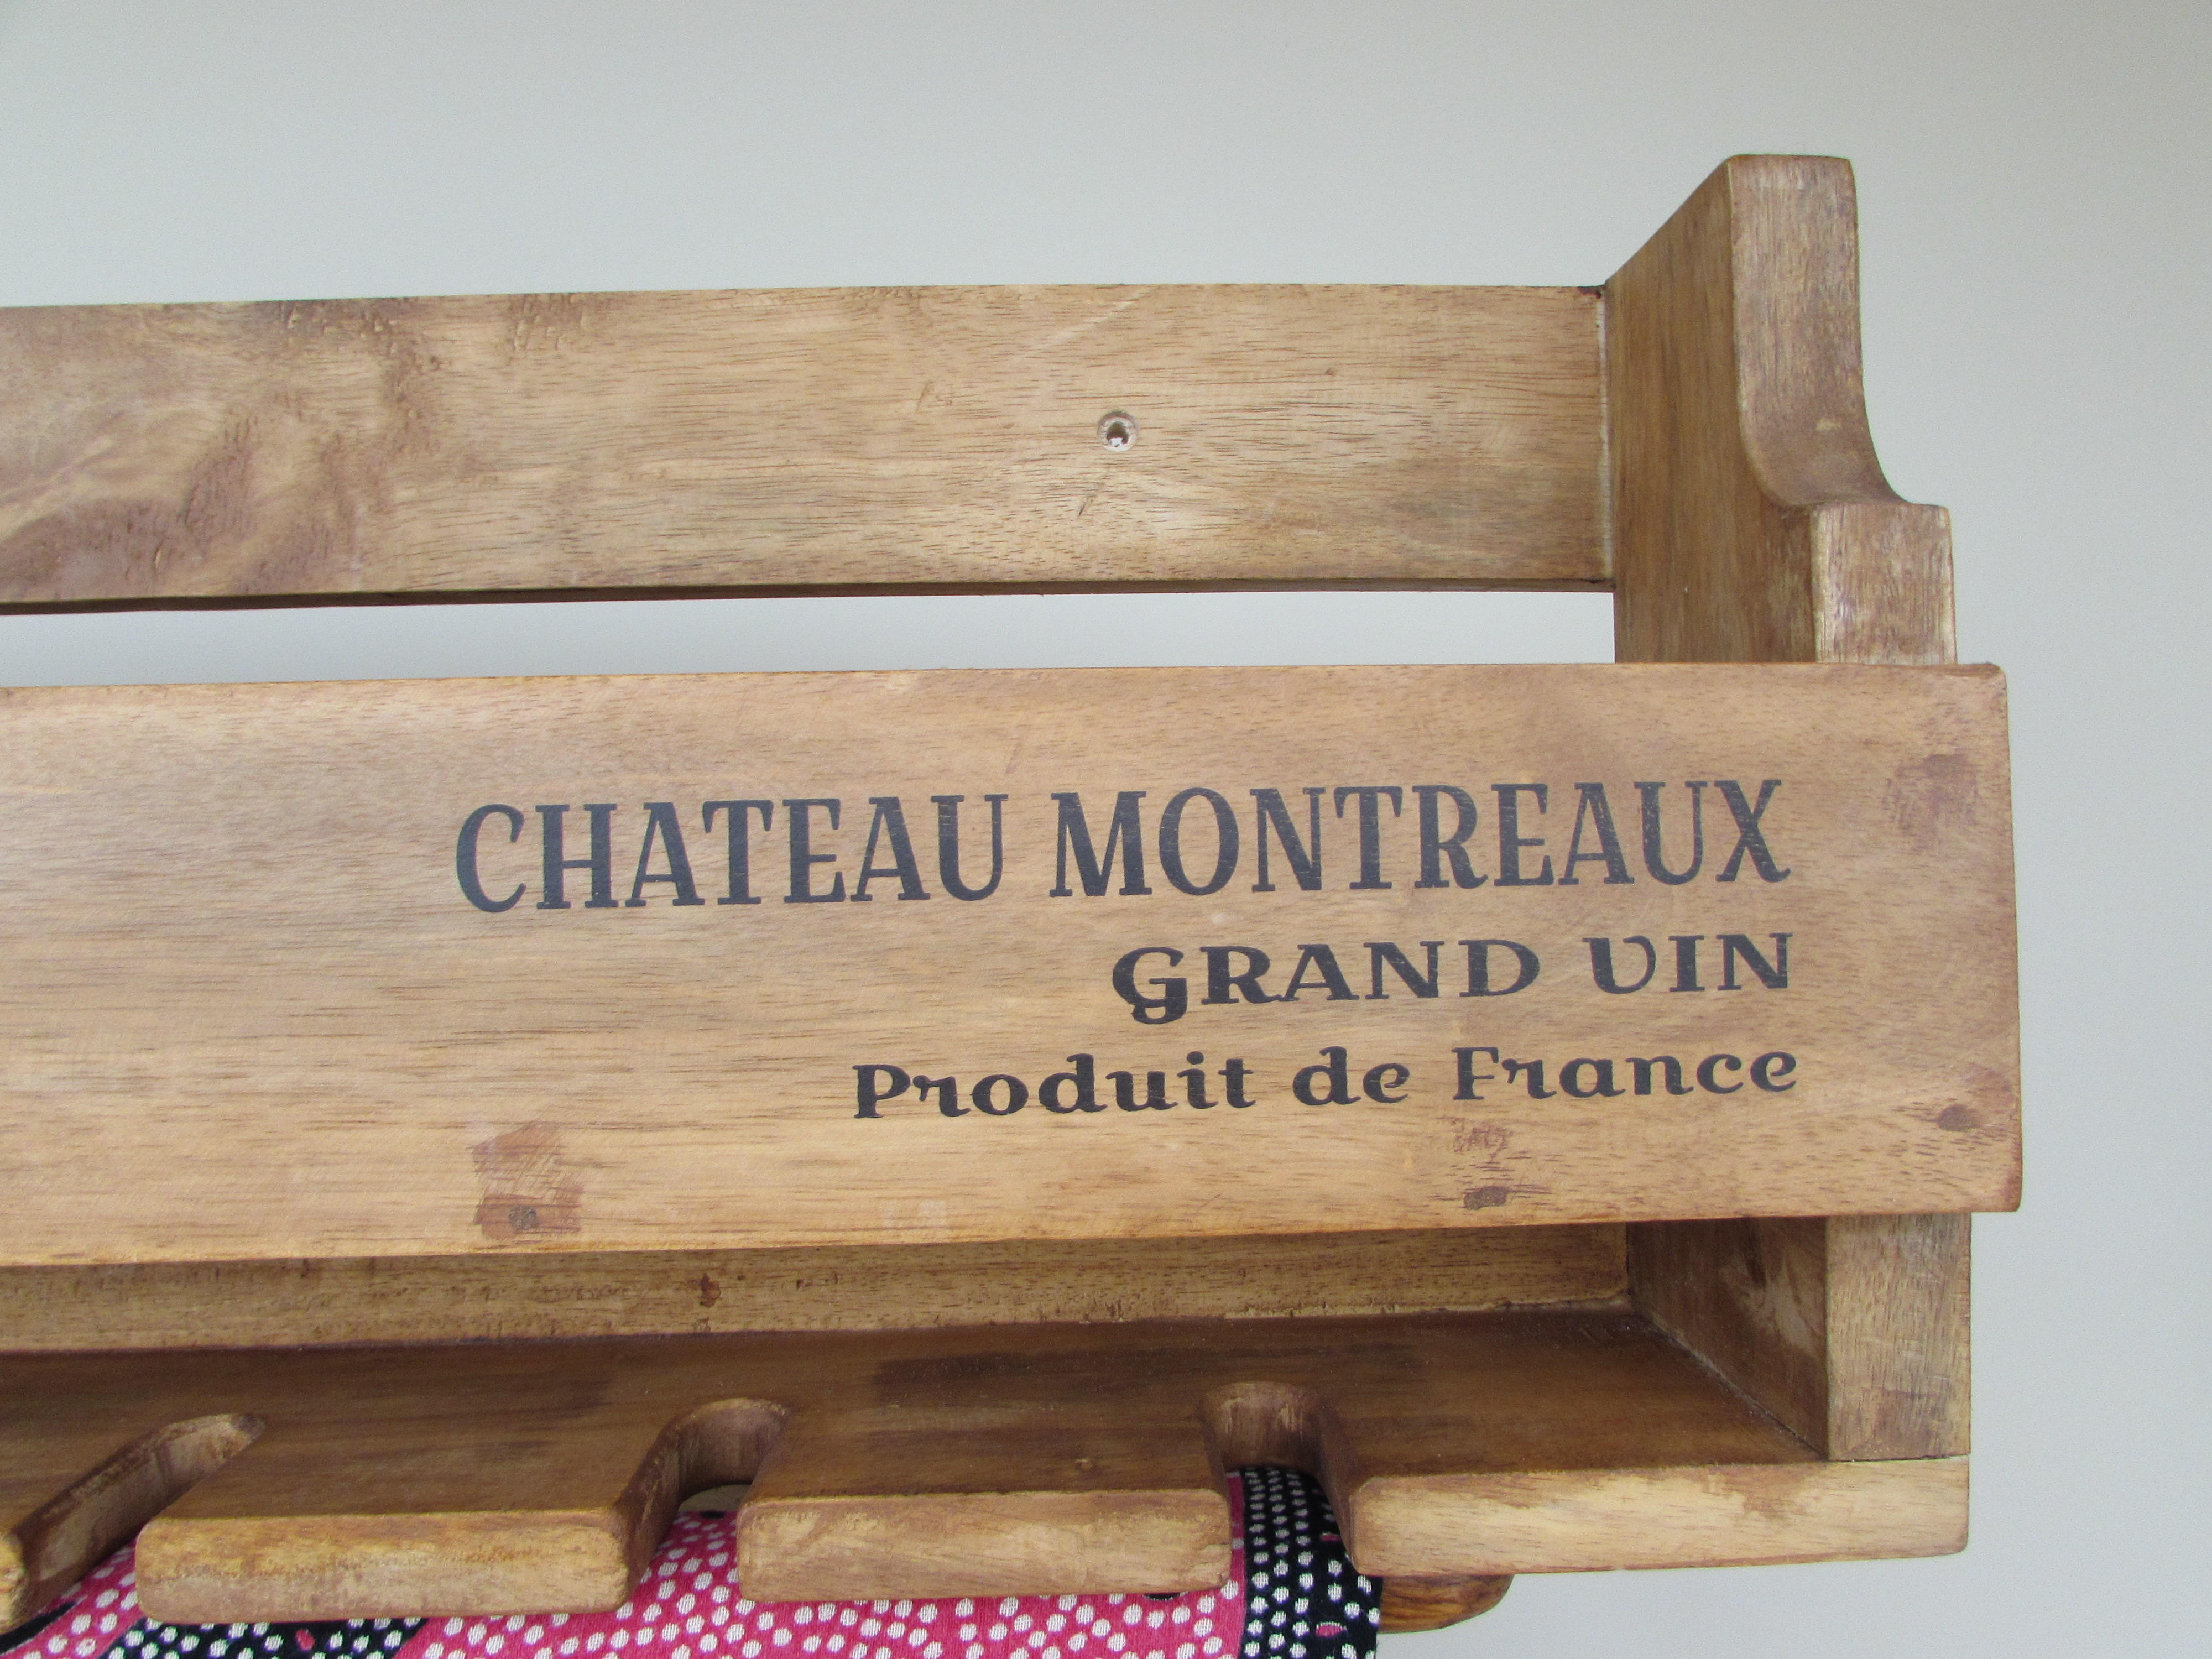 Wall mounted, solid wood Chateau Montreaux wine bottle and